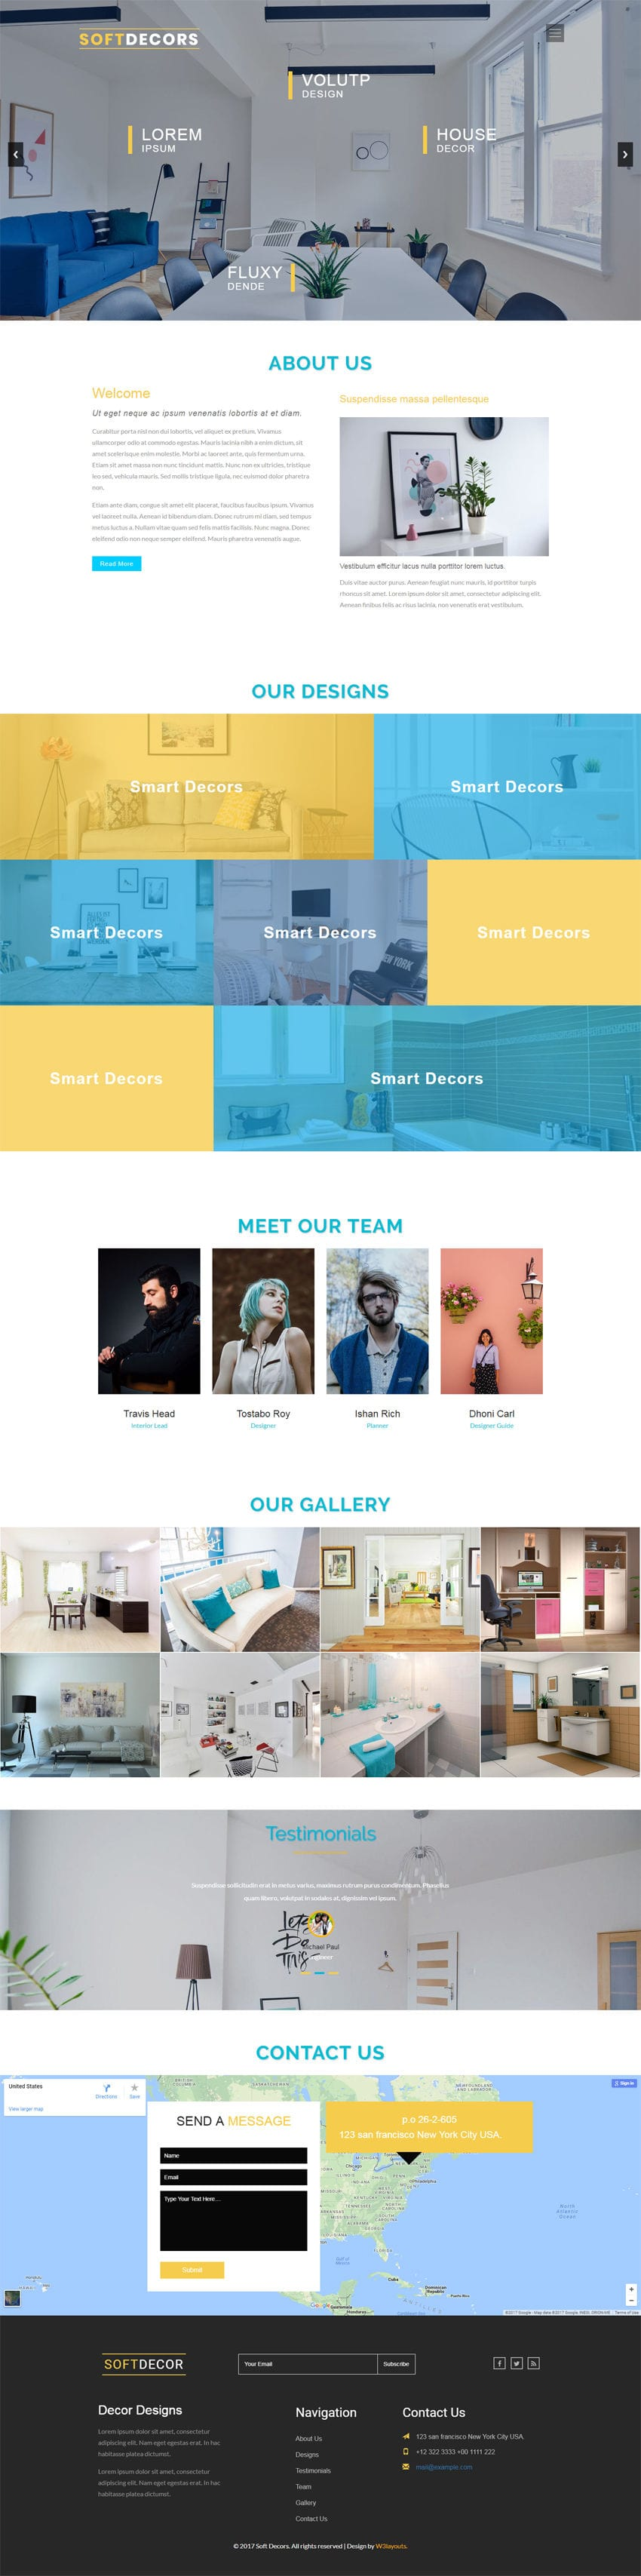 Soft decor an interior category bootstrap responsive web for Interior design responsive website templates edge free download